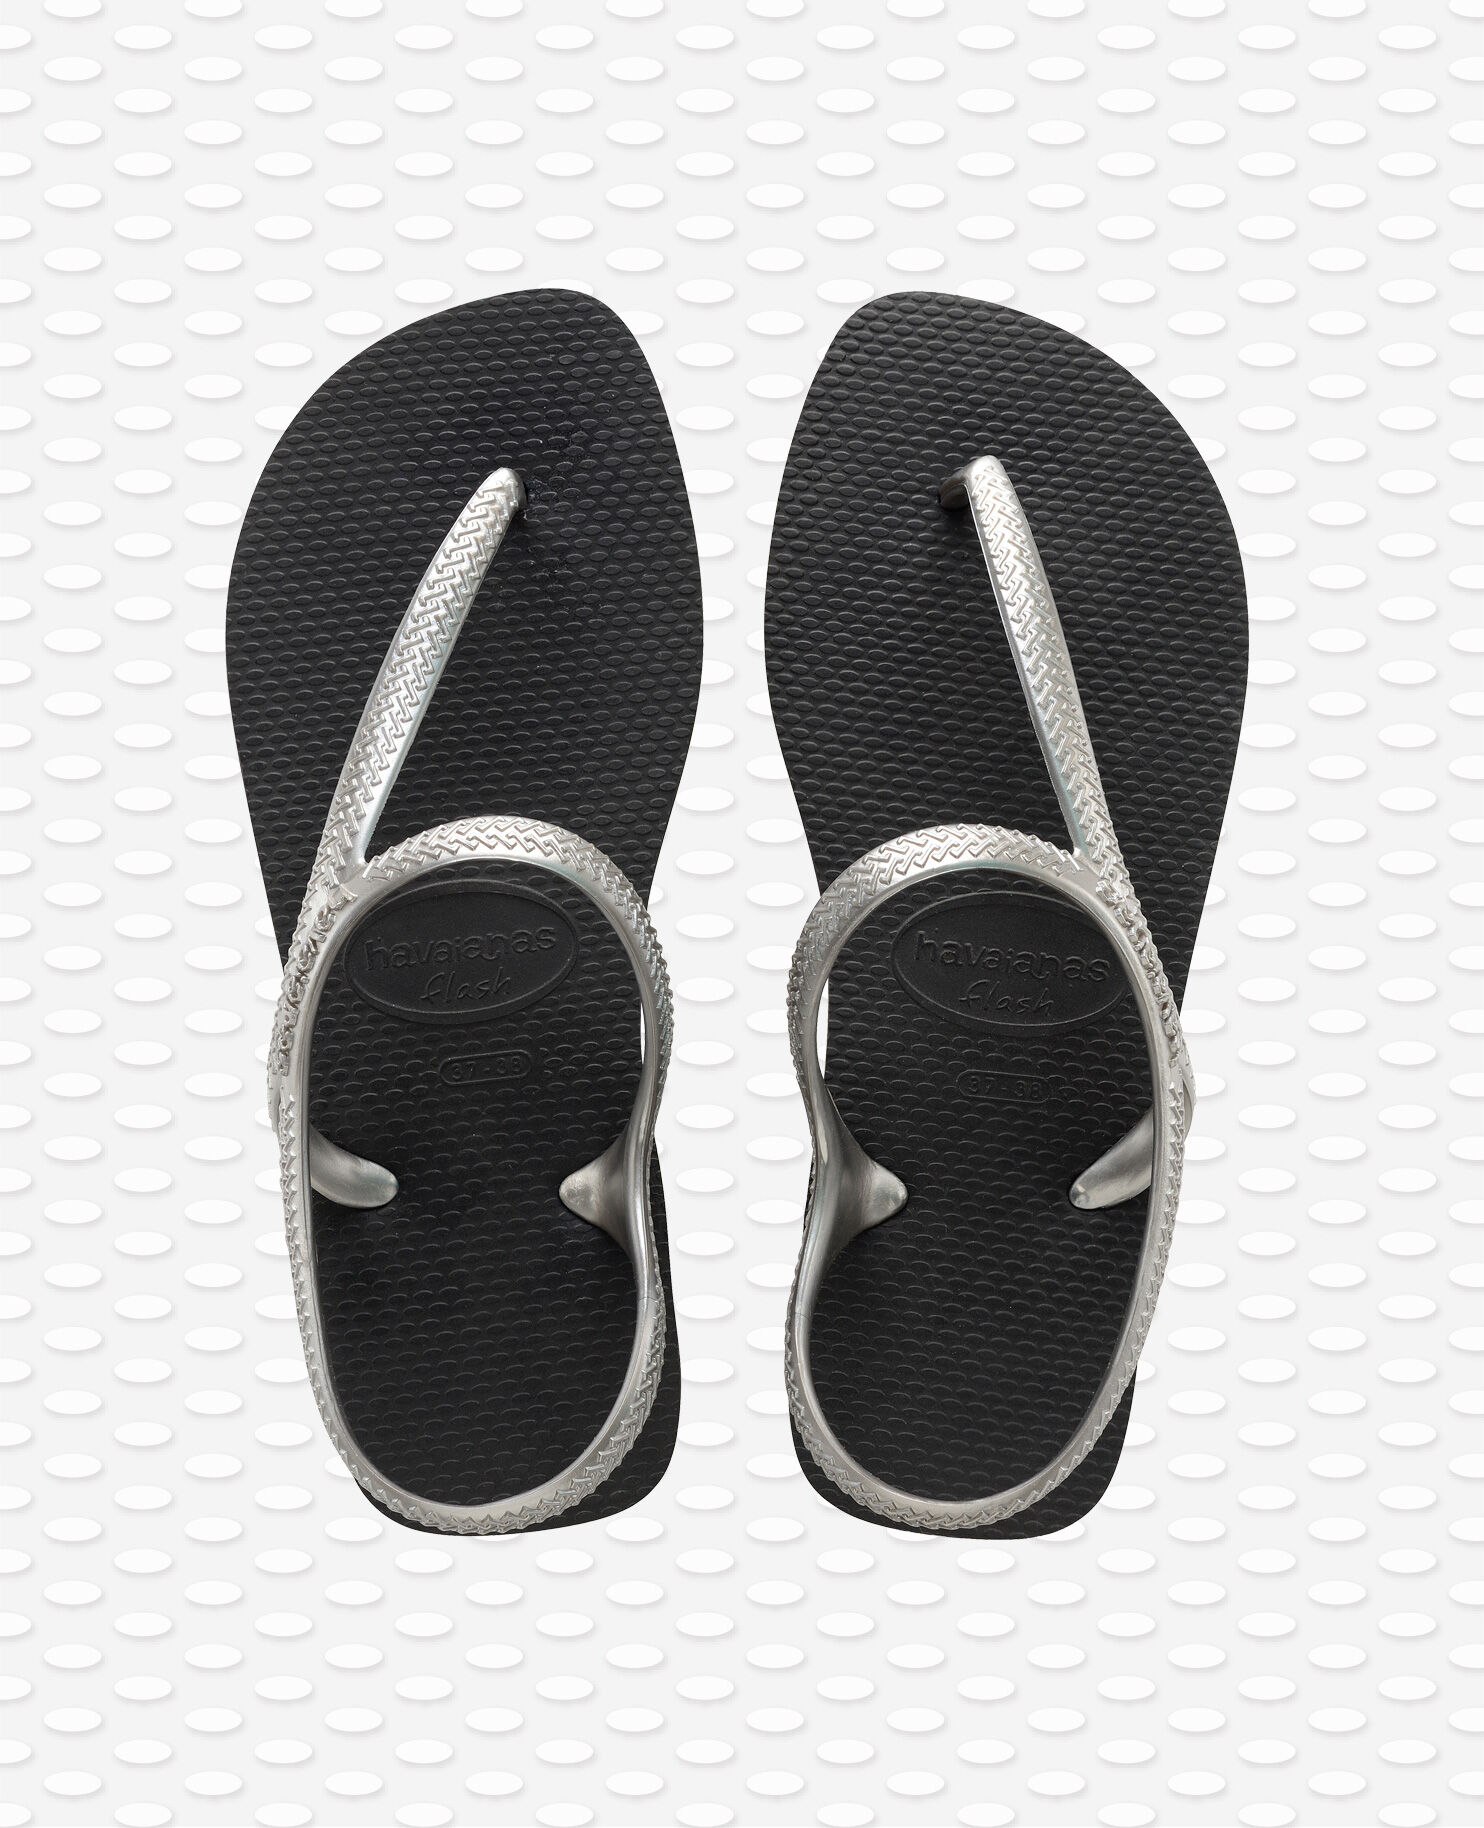 Shop Havaianas® Flash Havaianas Flash Havaianas UrbanOfficial SzMpVU